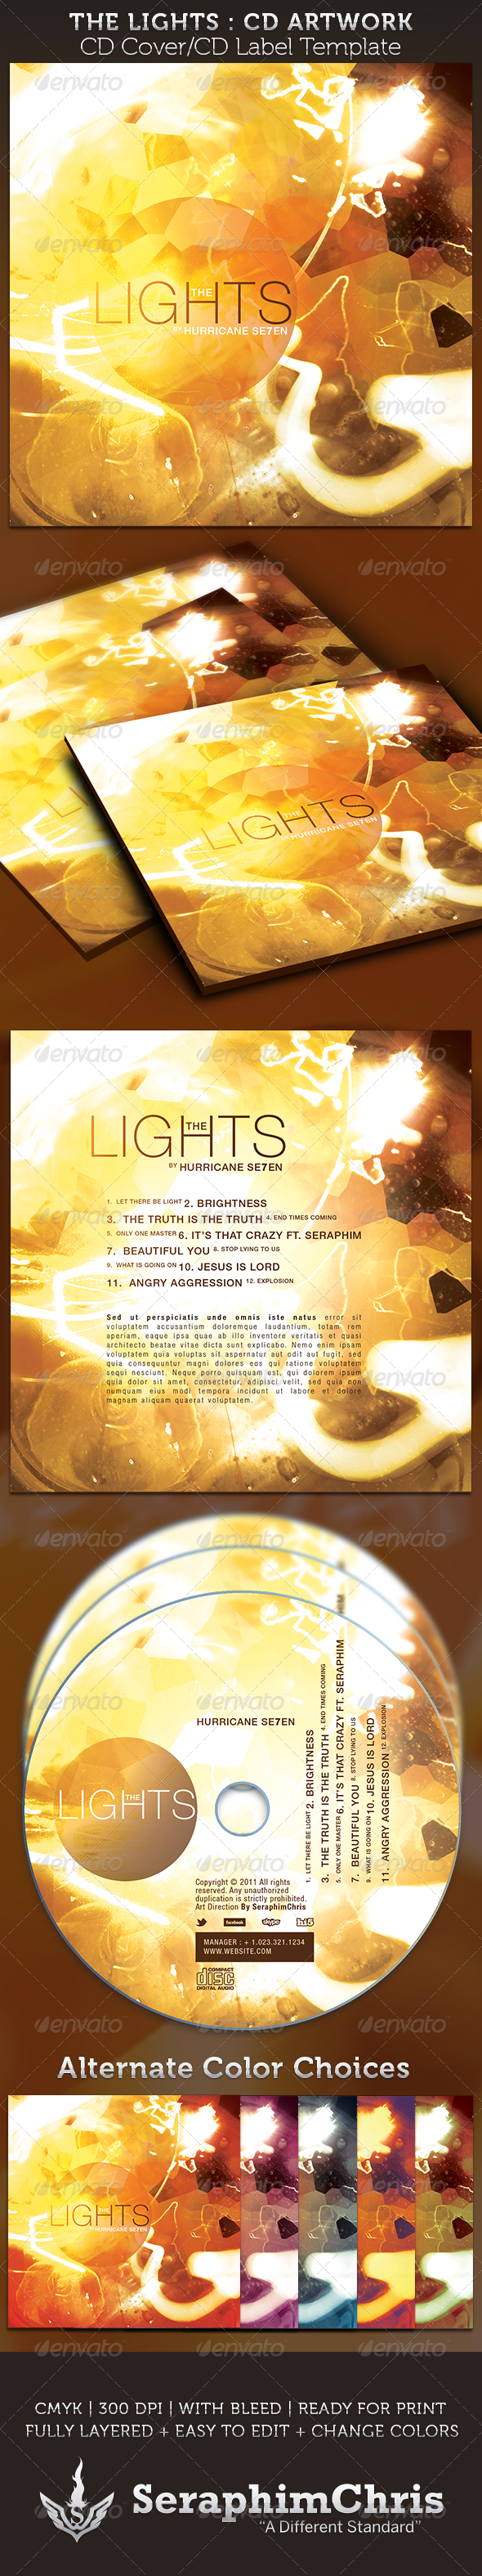 GraphicRiver The Lights CD Cover Artwork Template 3821570